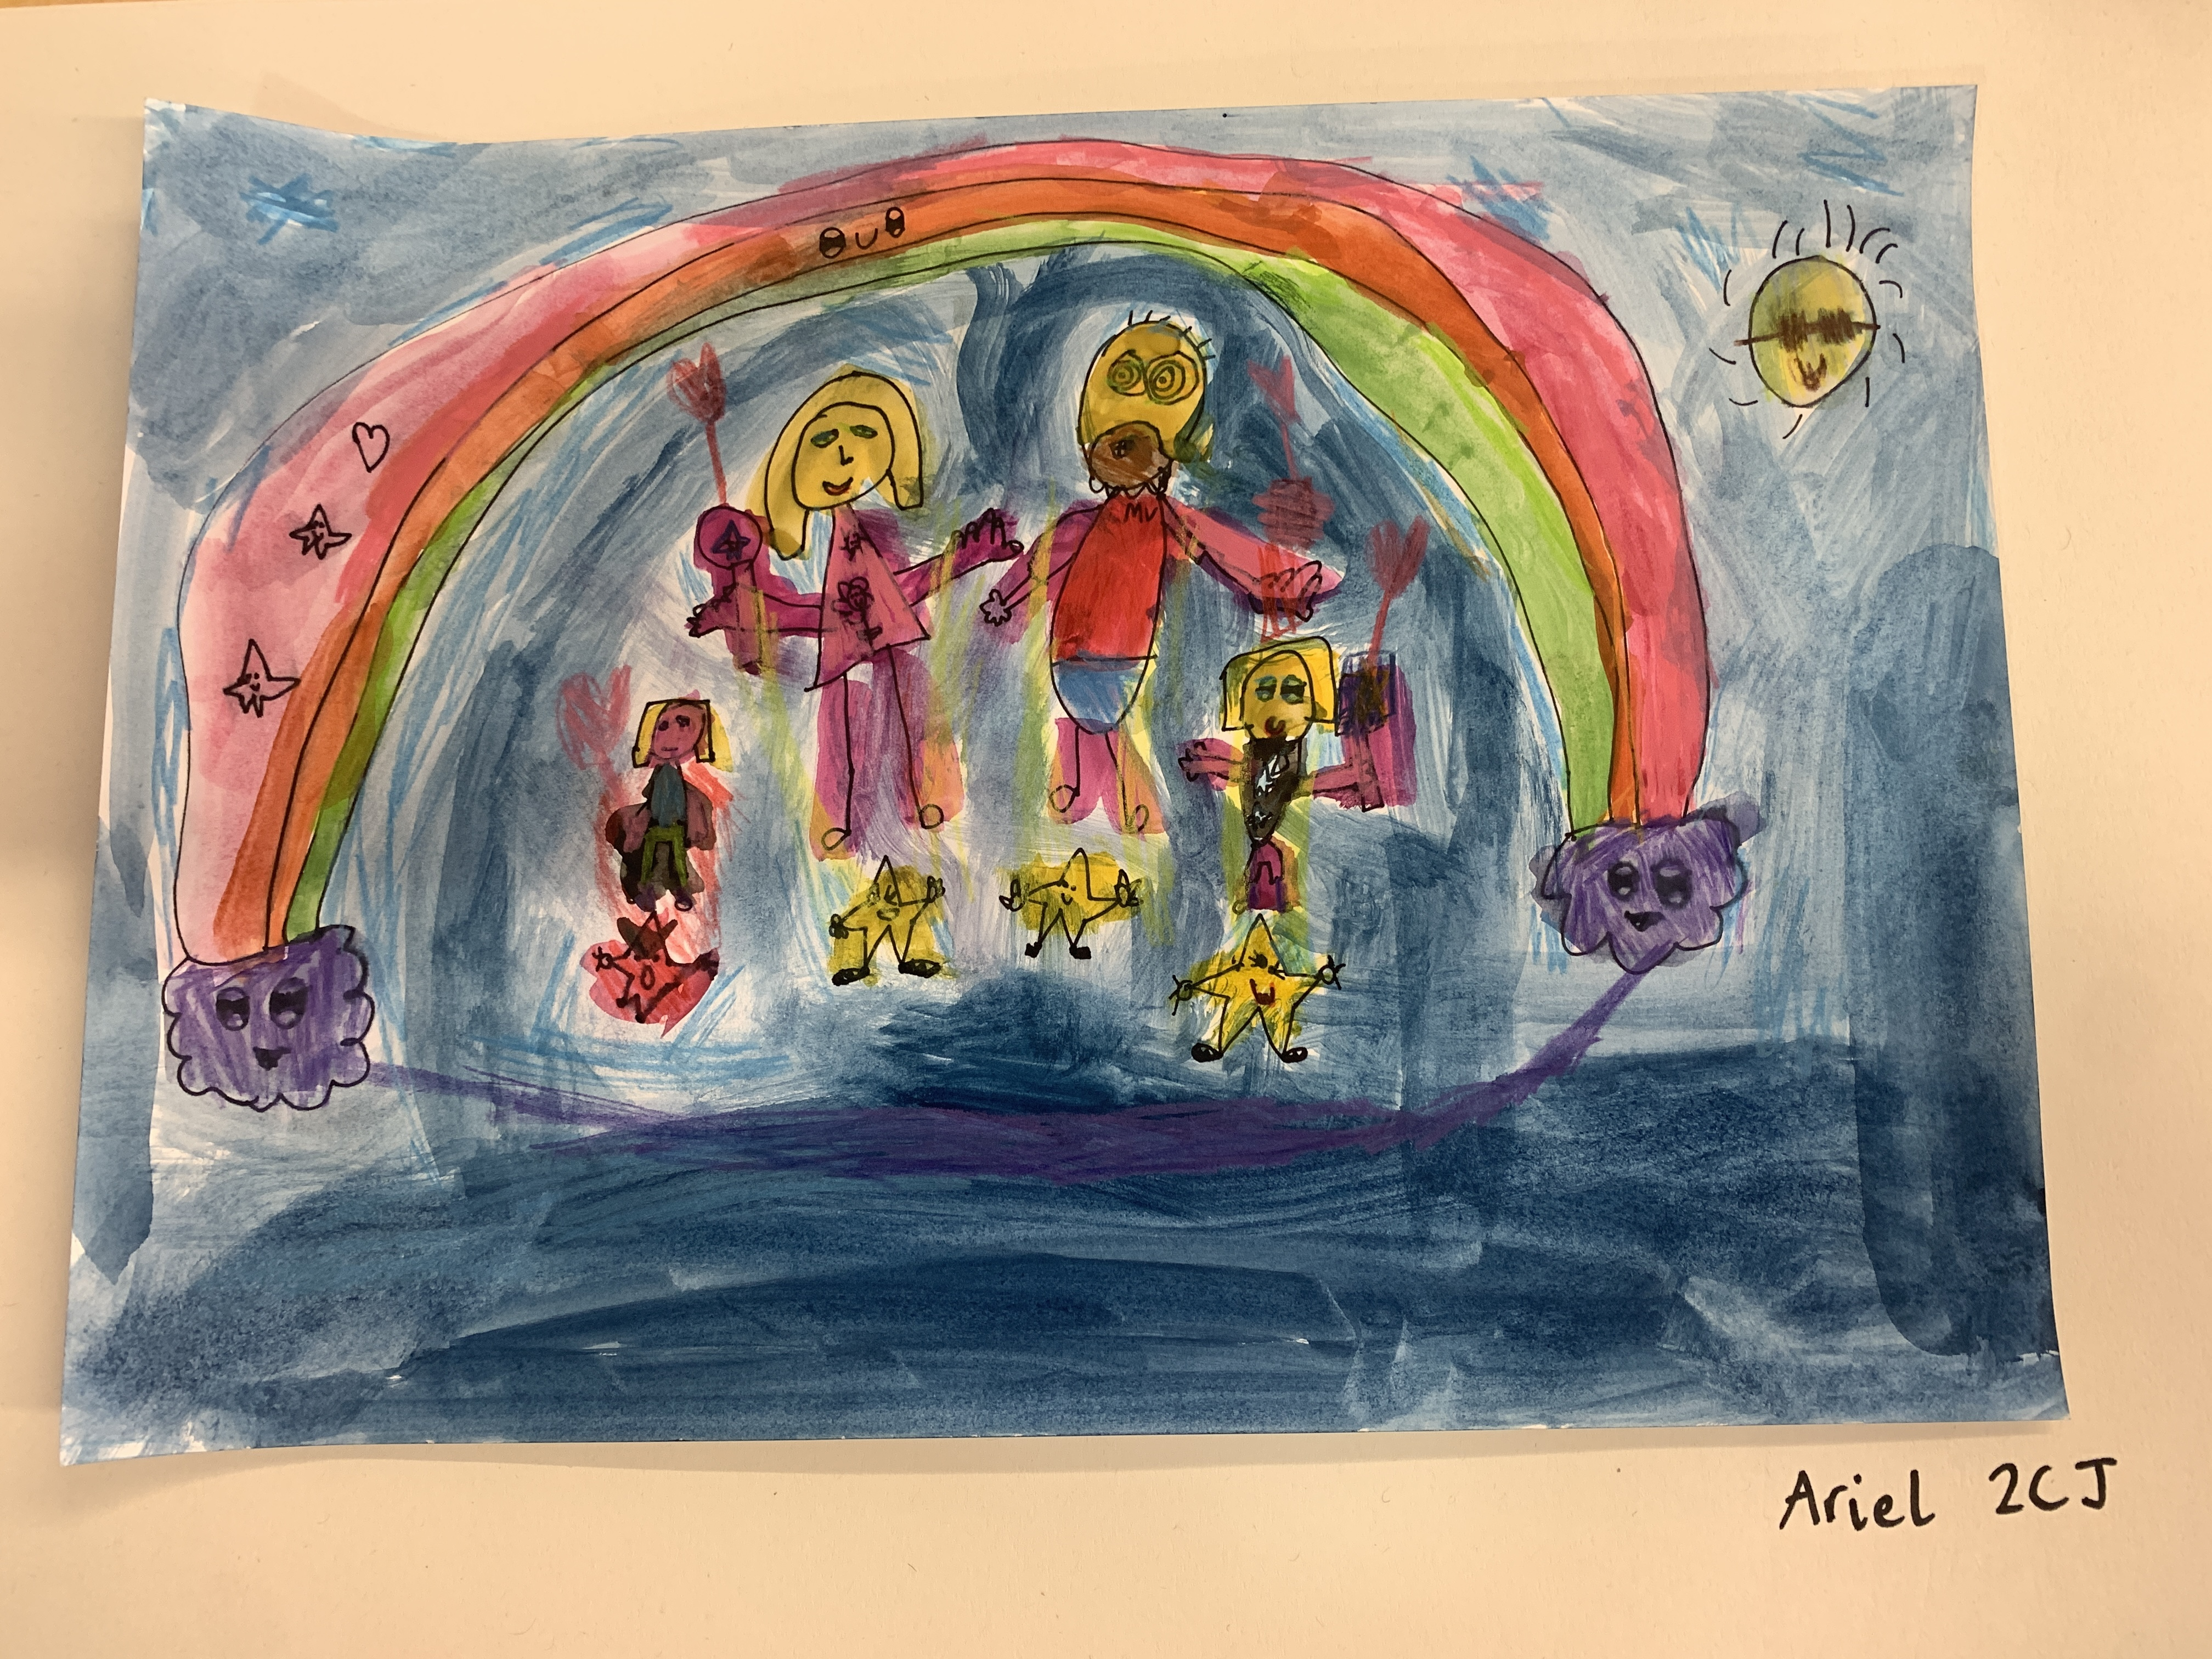 Rainbow over the Sea by Ariel